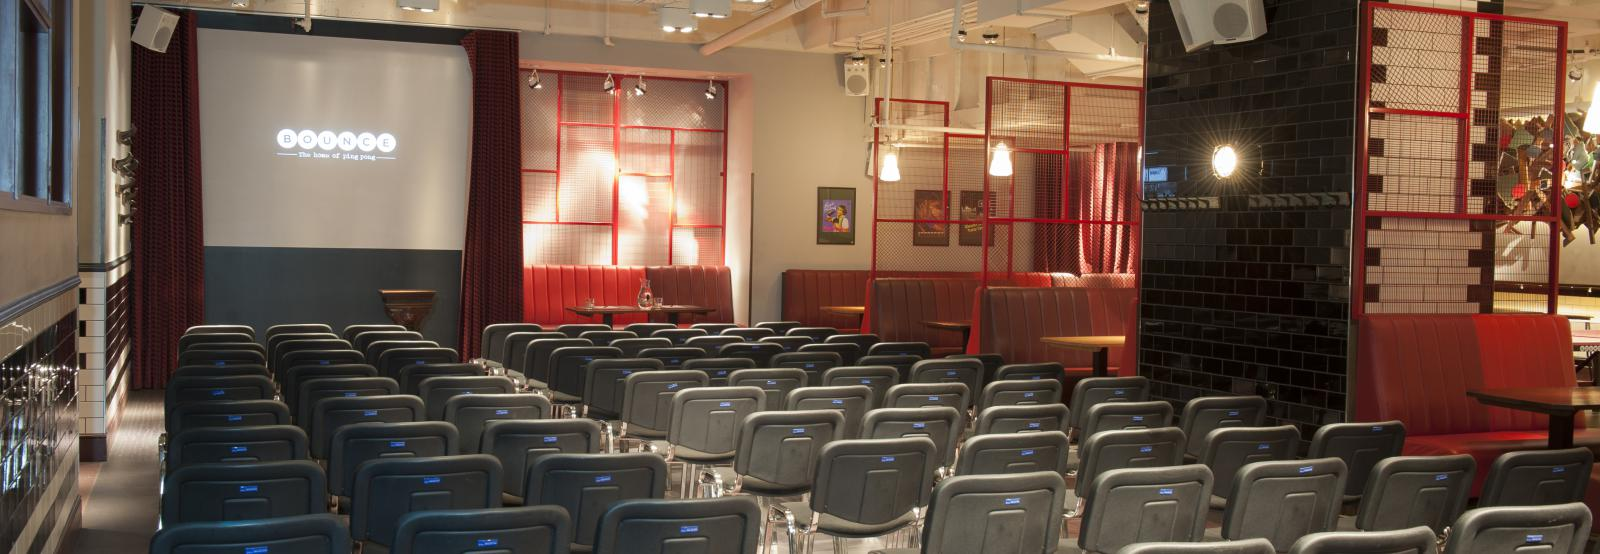 Meeting Rooms At Bounce Shoreditch Bounce Shoreditch